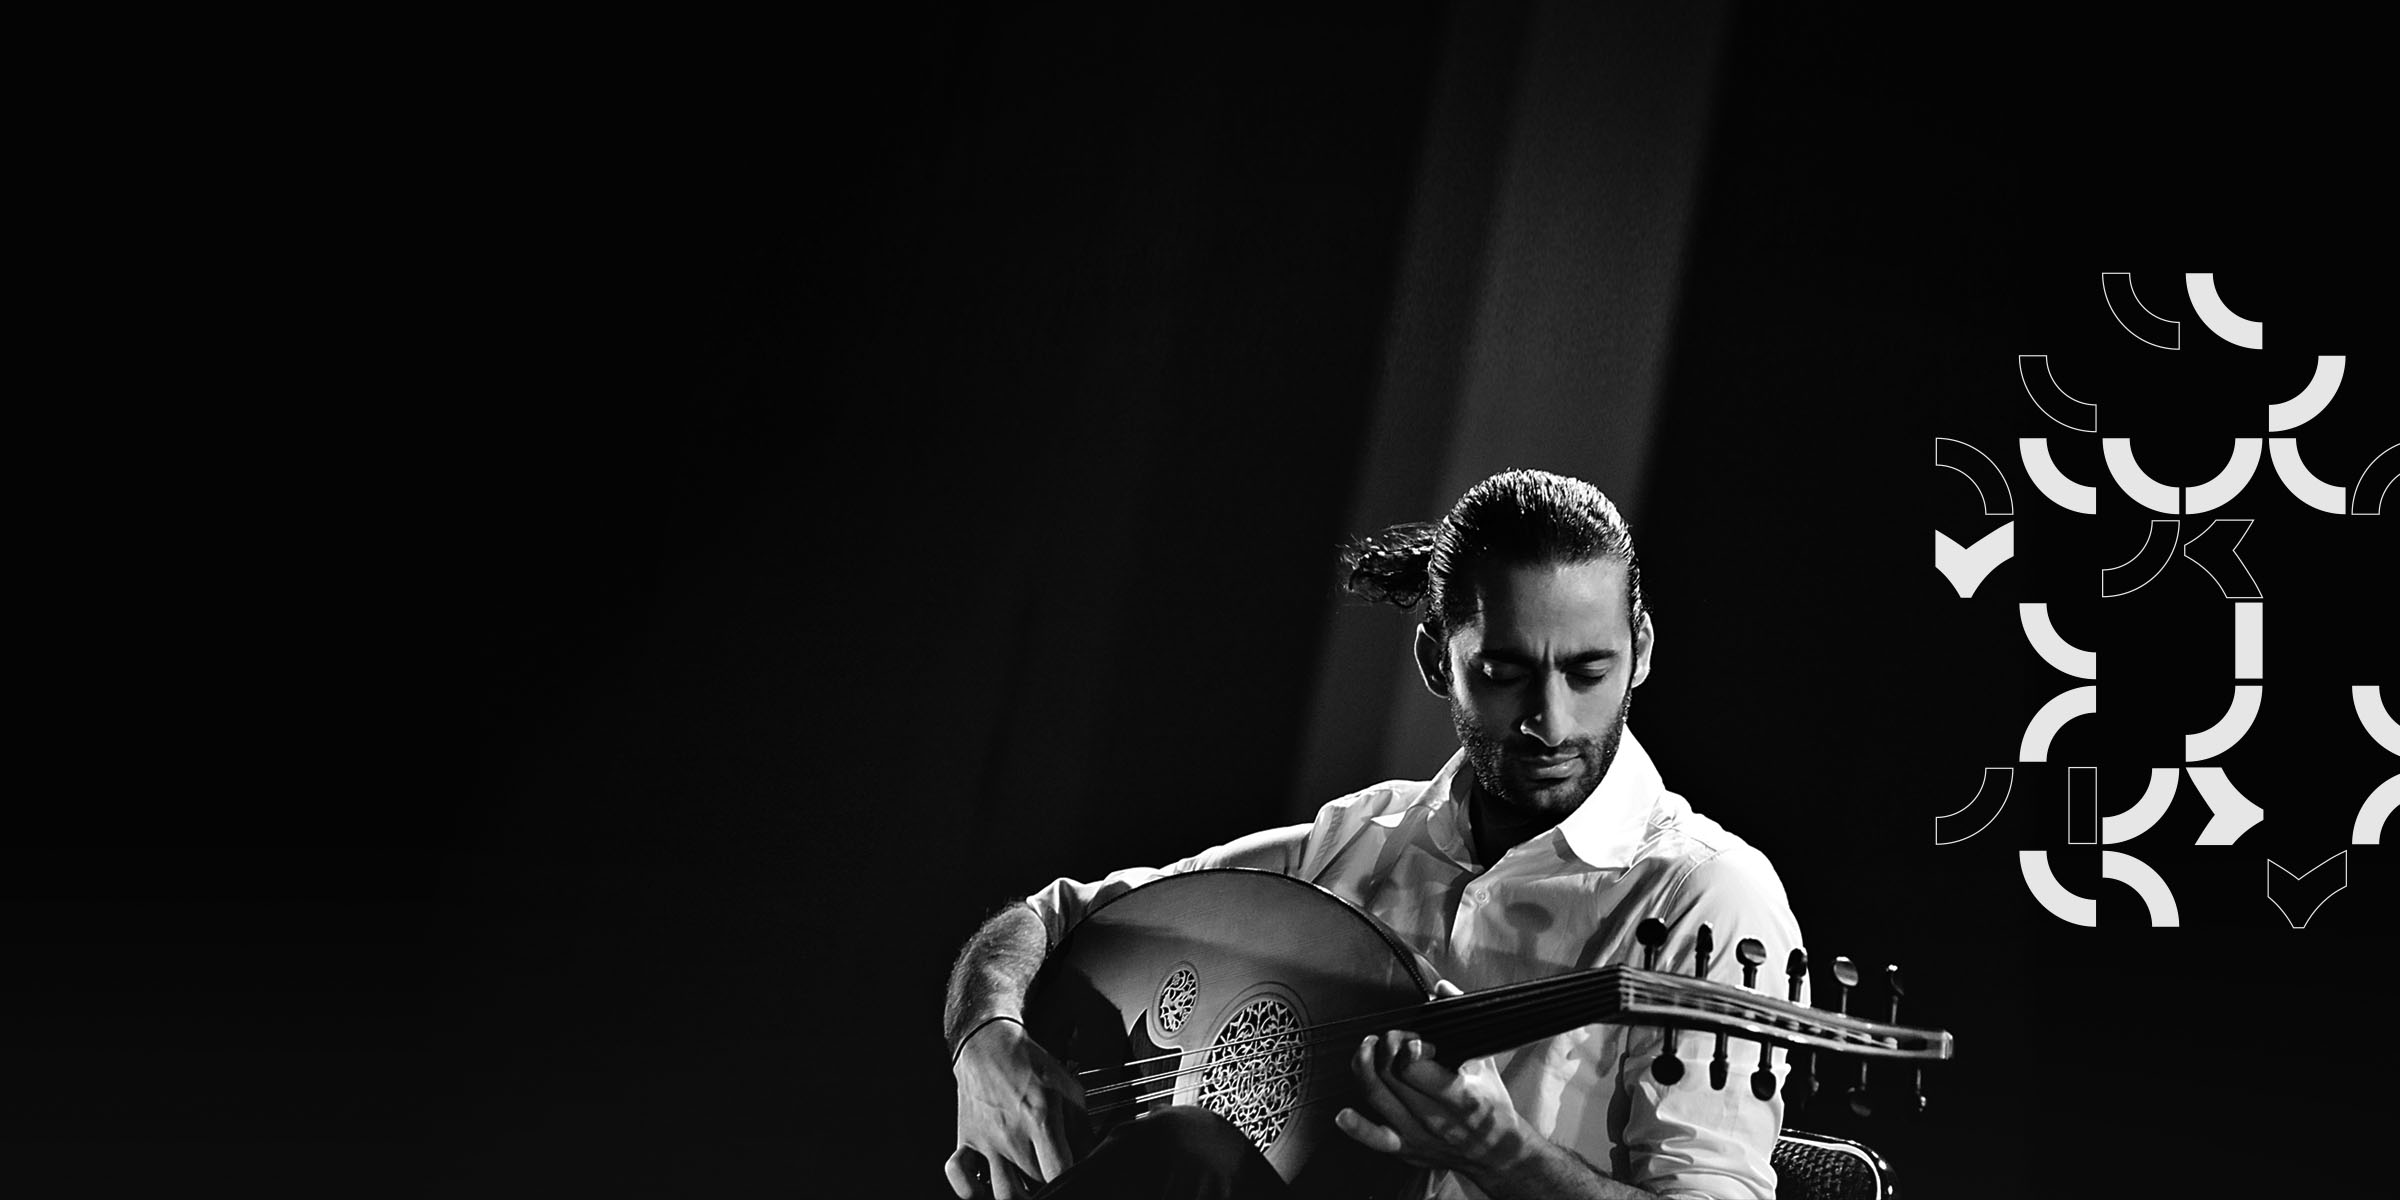 Spotlit performer playing an oud